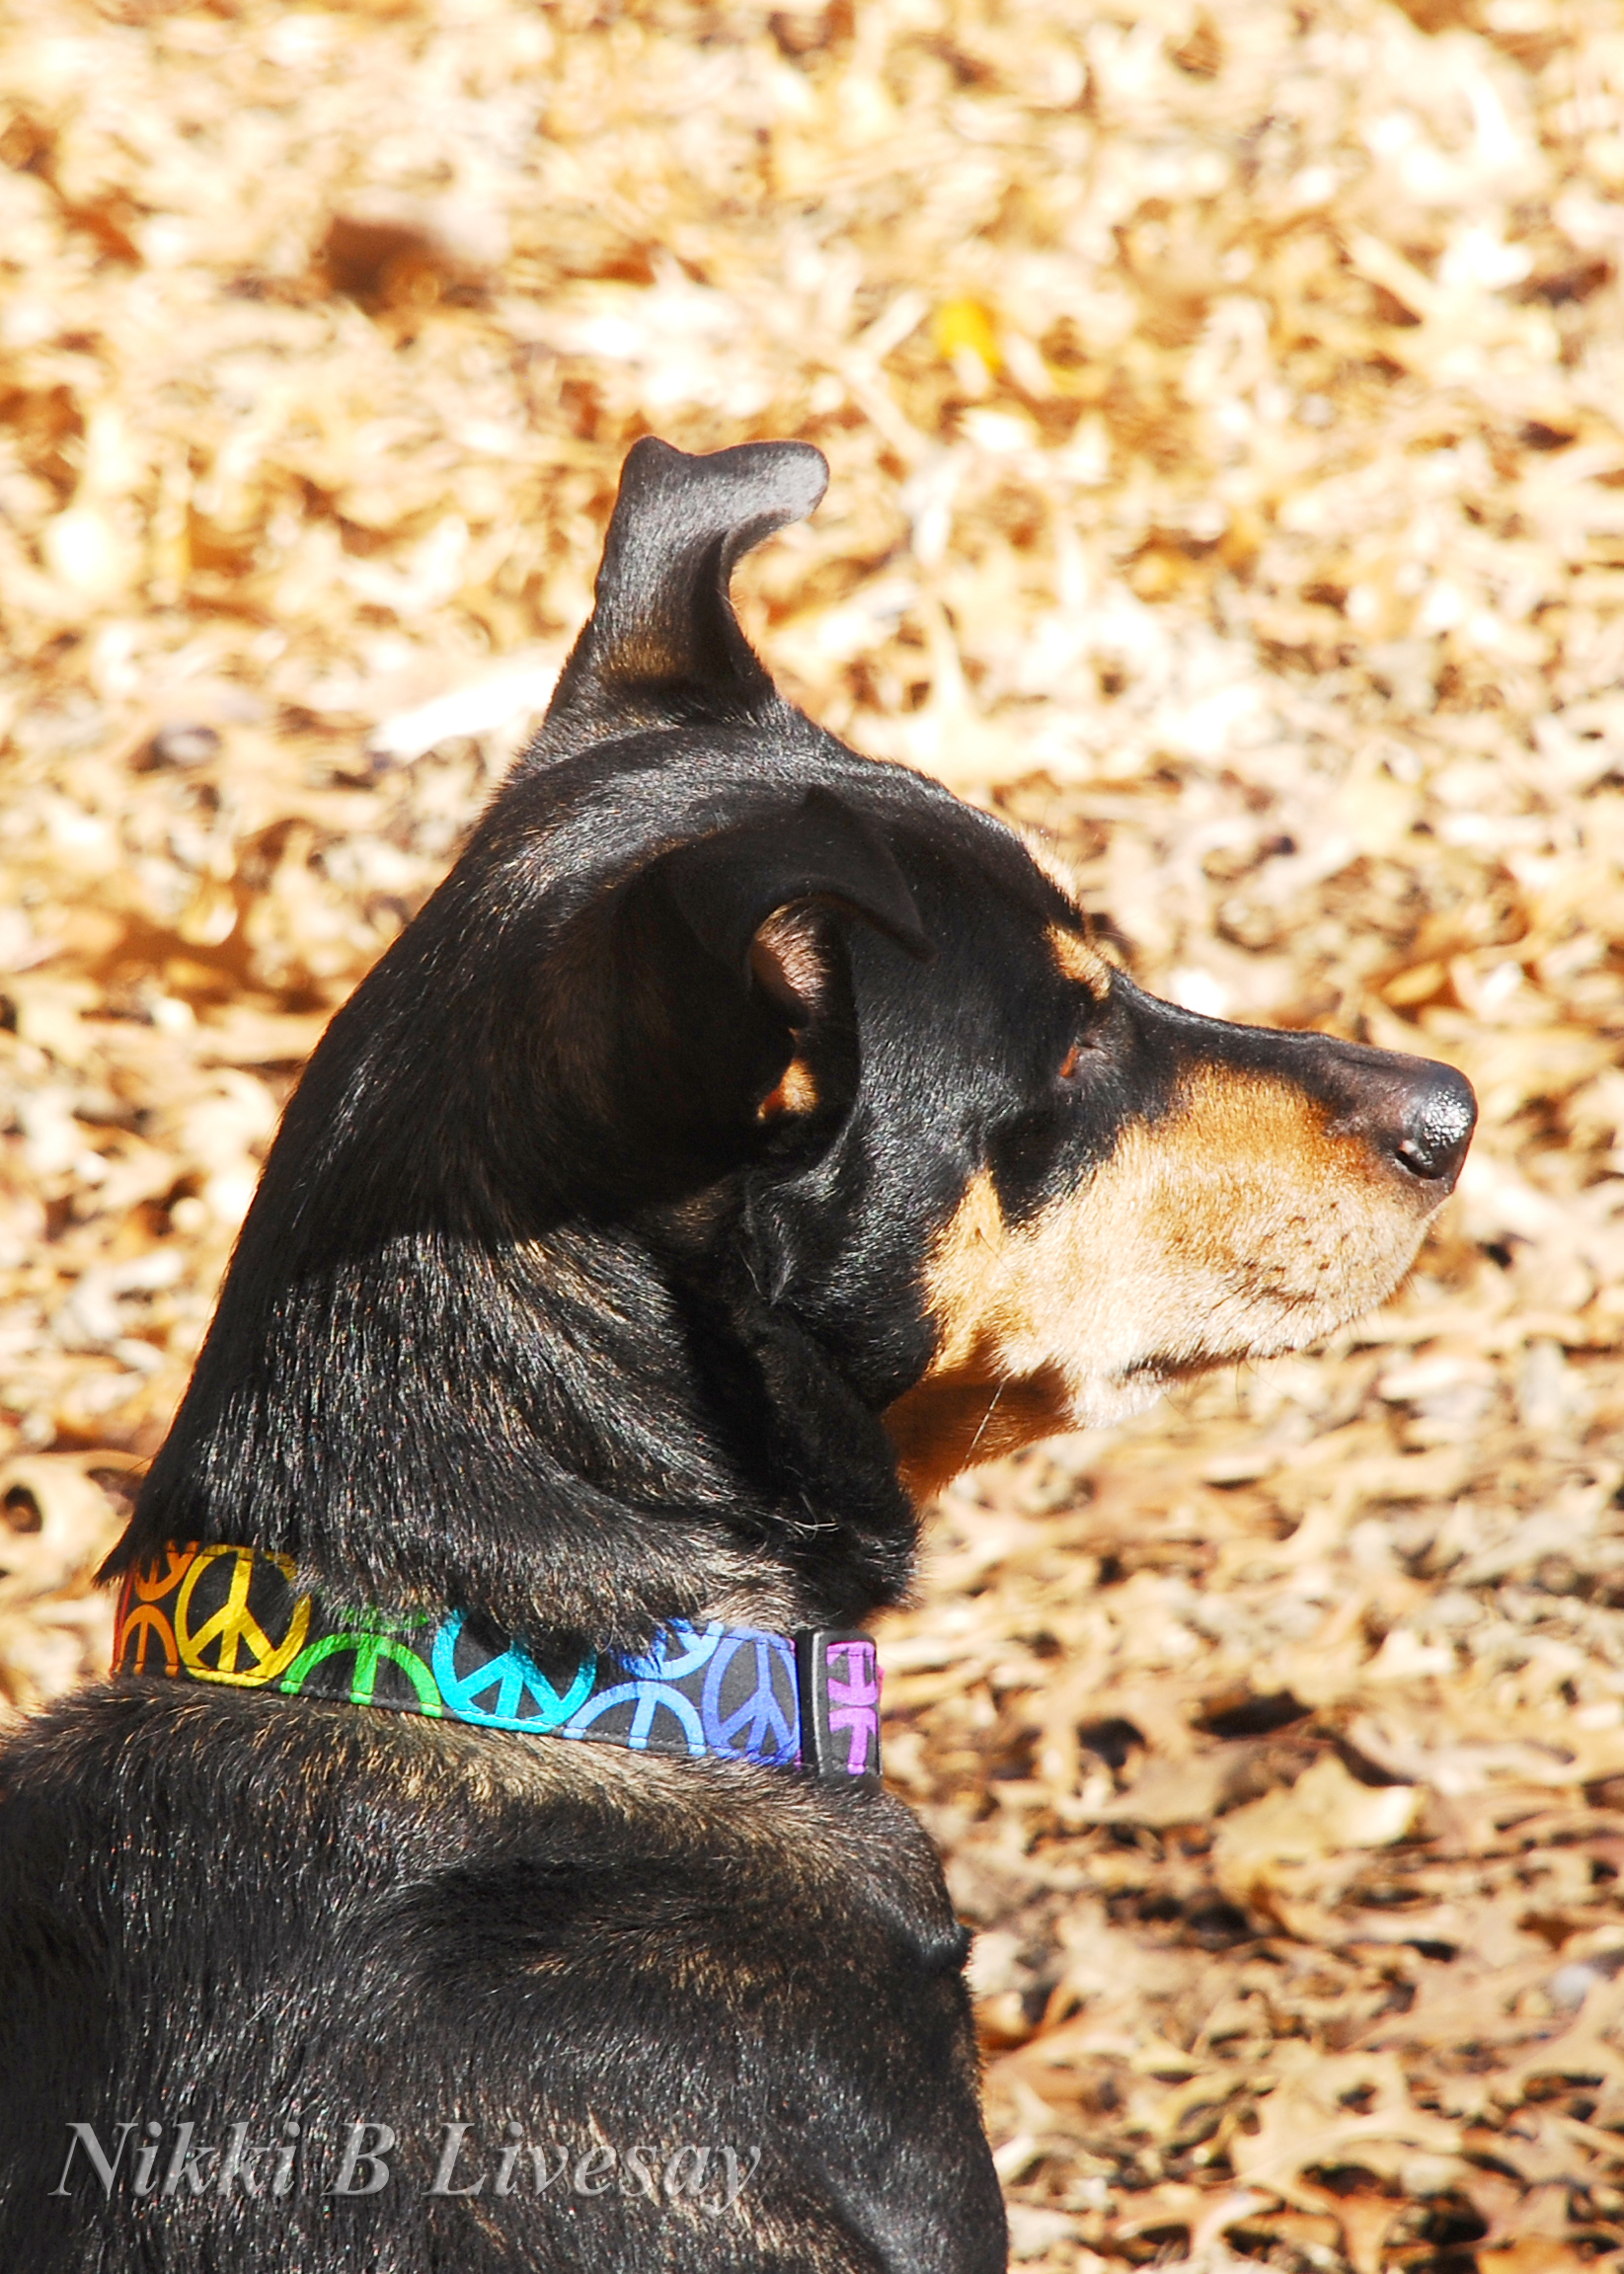 x-ny-peace-collar1-w-nikki-b-watermark-copy.jpg